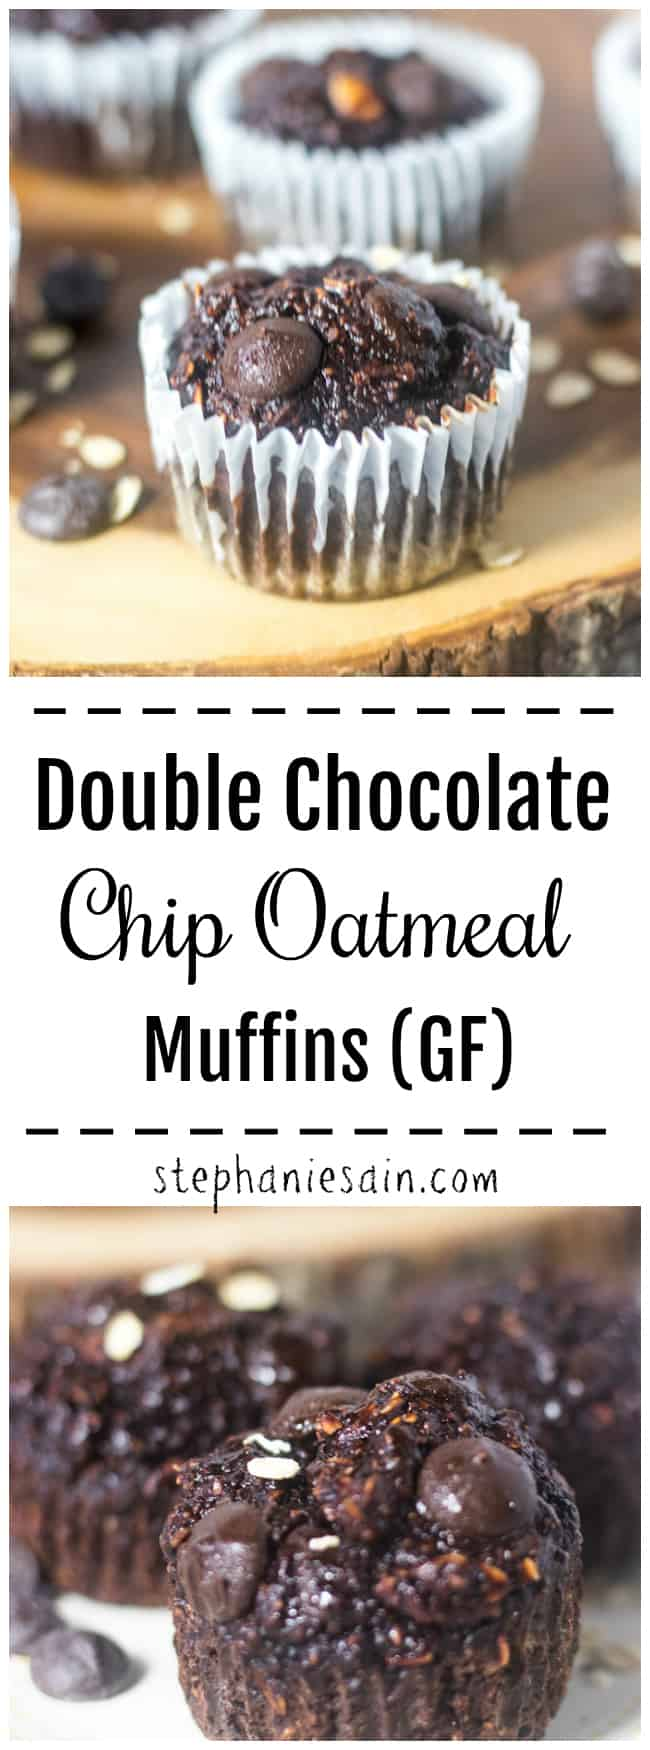 These Chocolate Muffins are jam packed with chocolate chips and oatmeal. A healthier muffin made with simple ingredients that's perfect for breakfast, snacking or dessert. Gluten Free and No Added Refined Sugars.